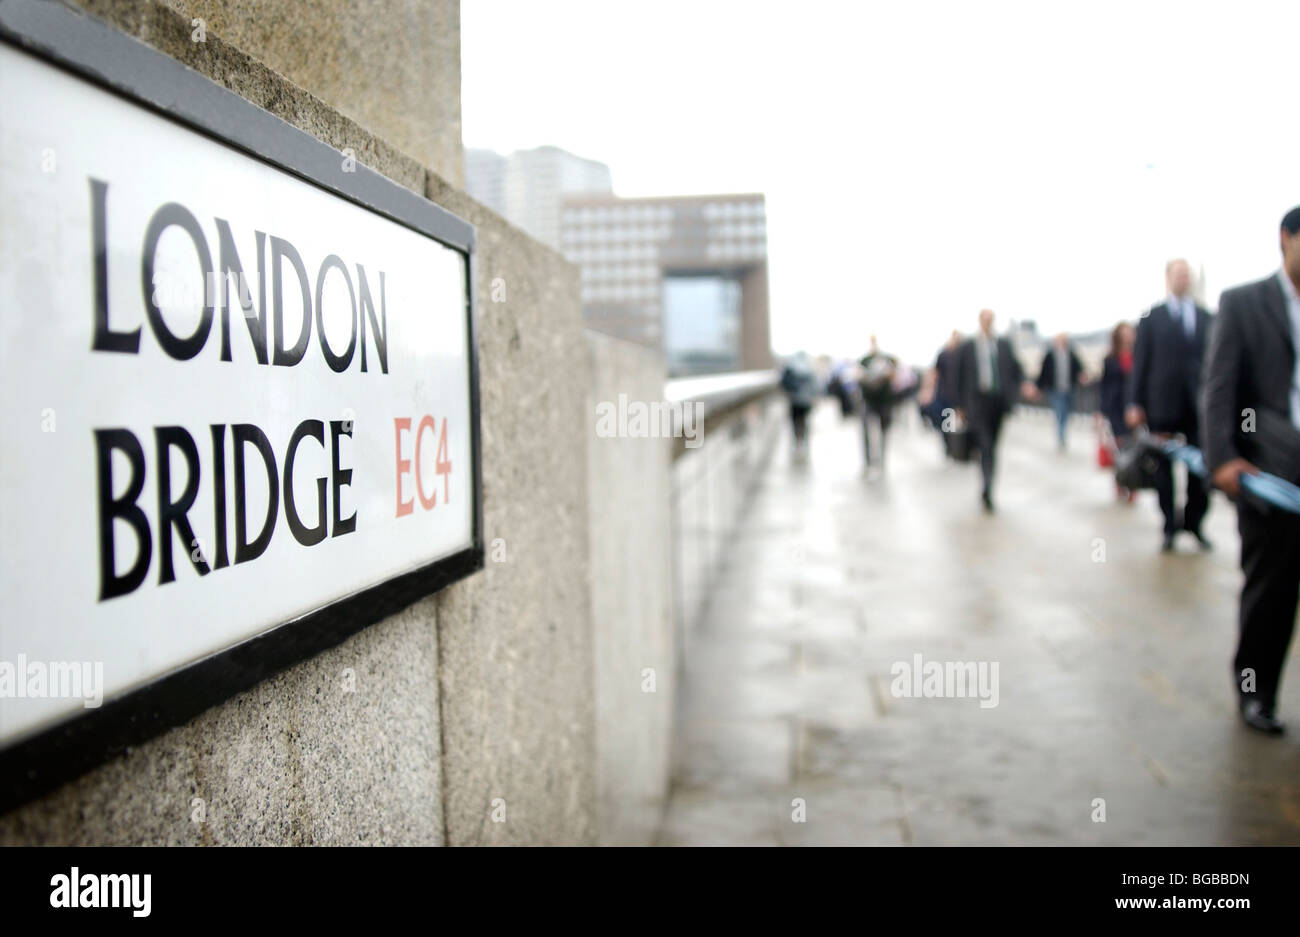 Royalty free photograph of London Bridge with morning commuters walking over it. - Stock Image